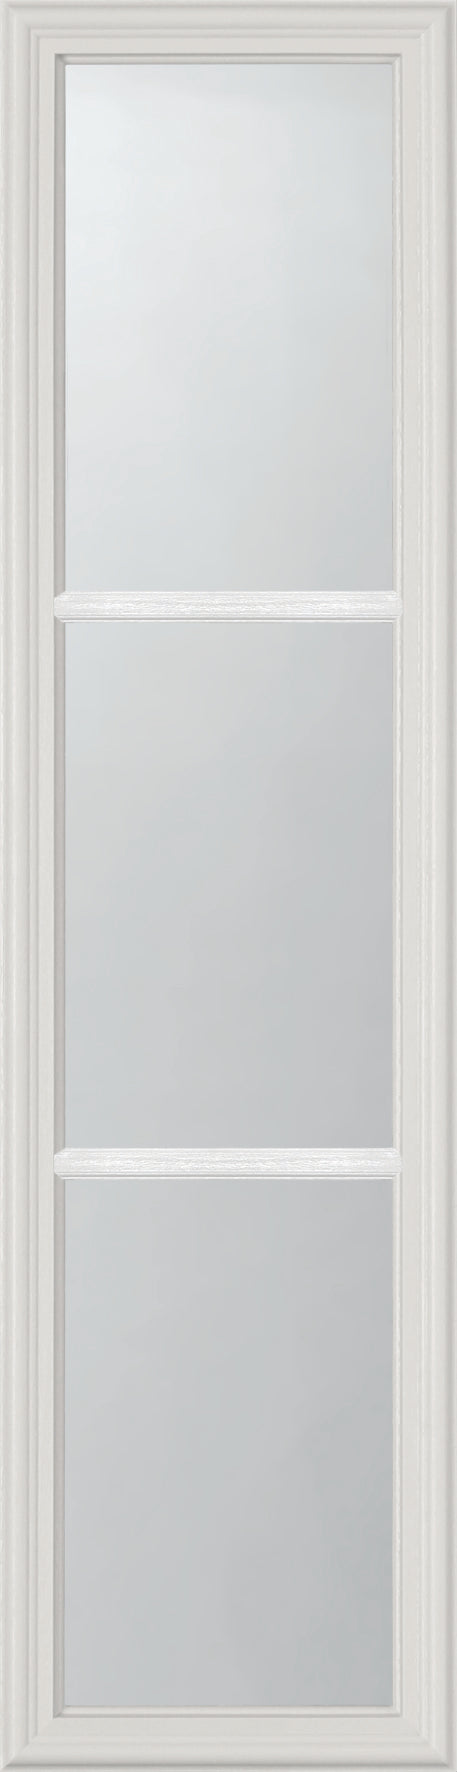 "Clear 3 Lite Glass and Frame Kit (Half Sidelite 8"" x 36"" Glass Size)"